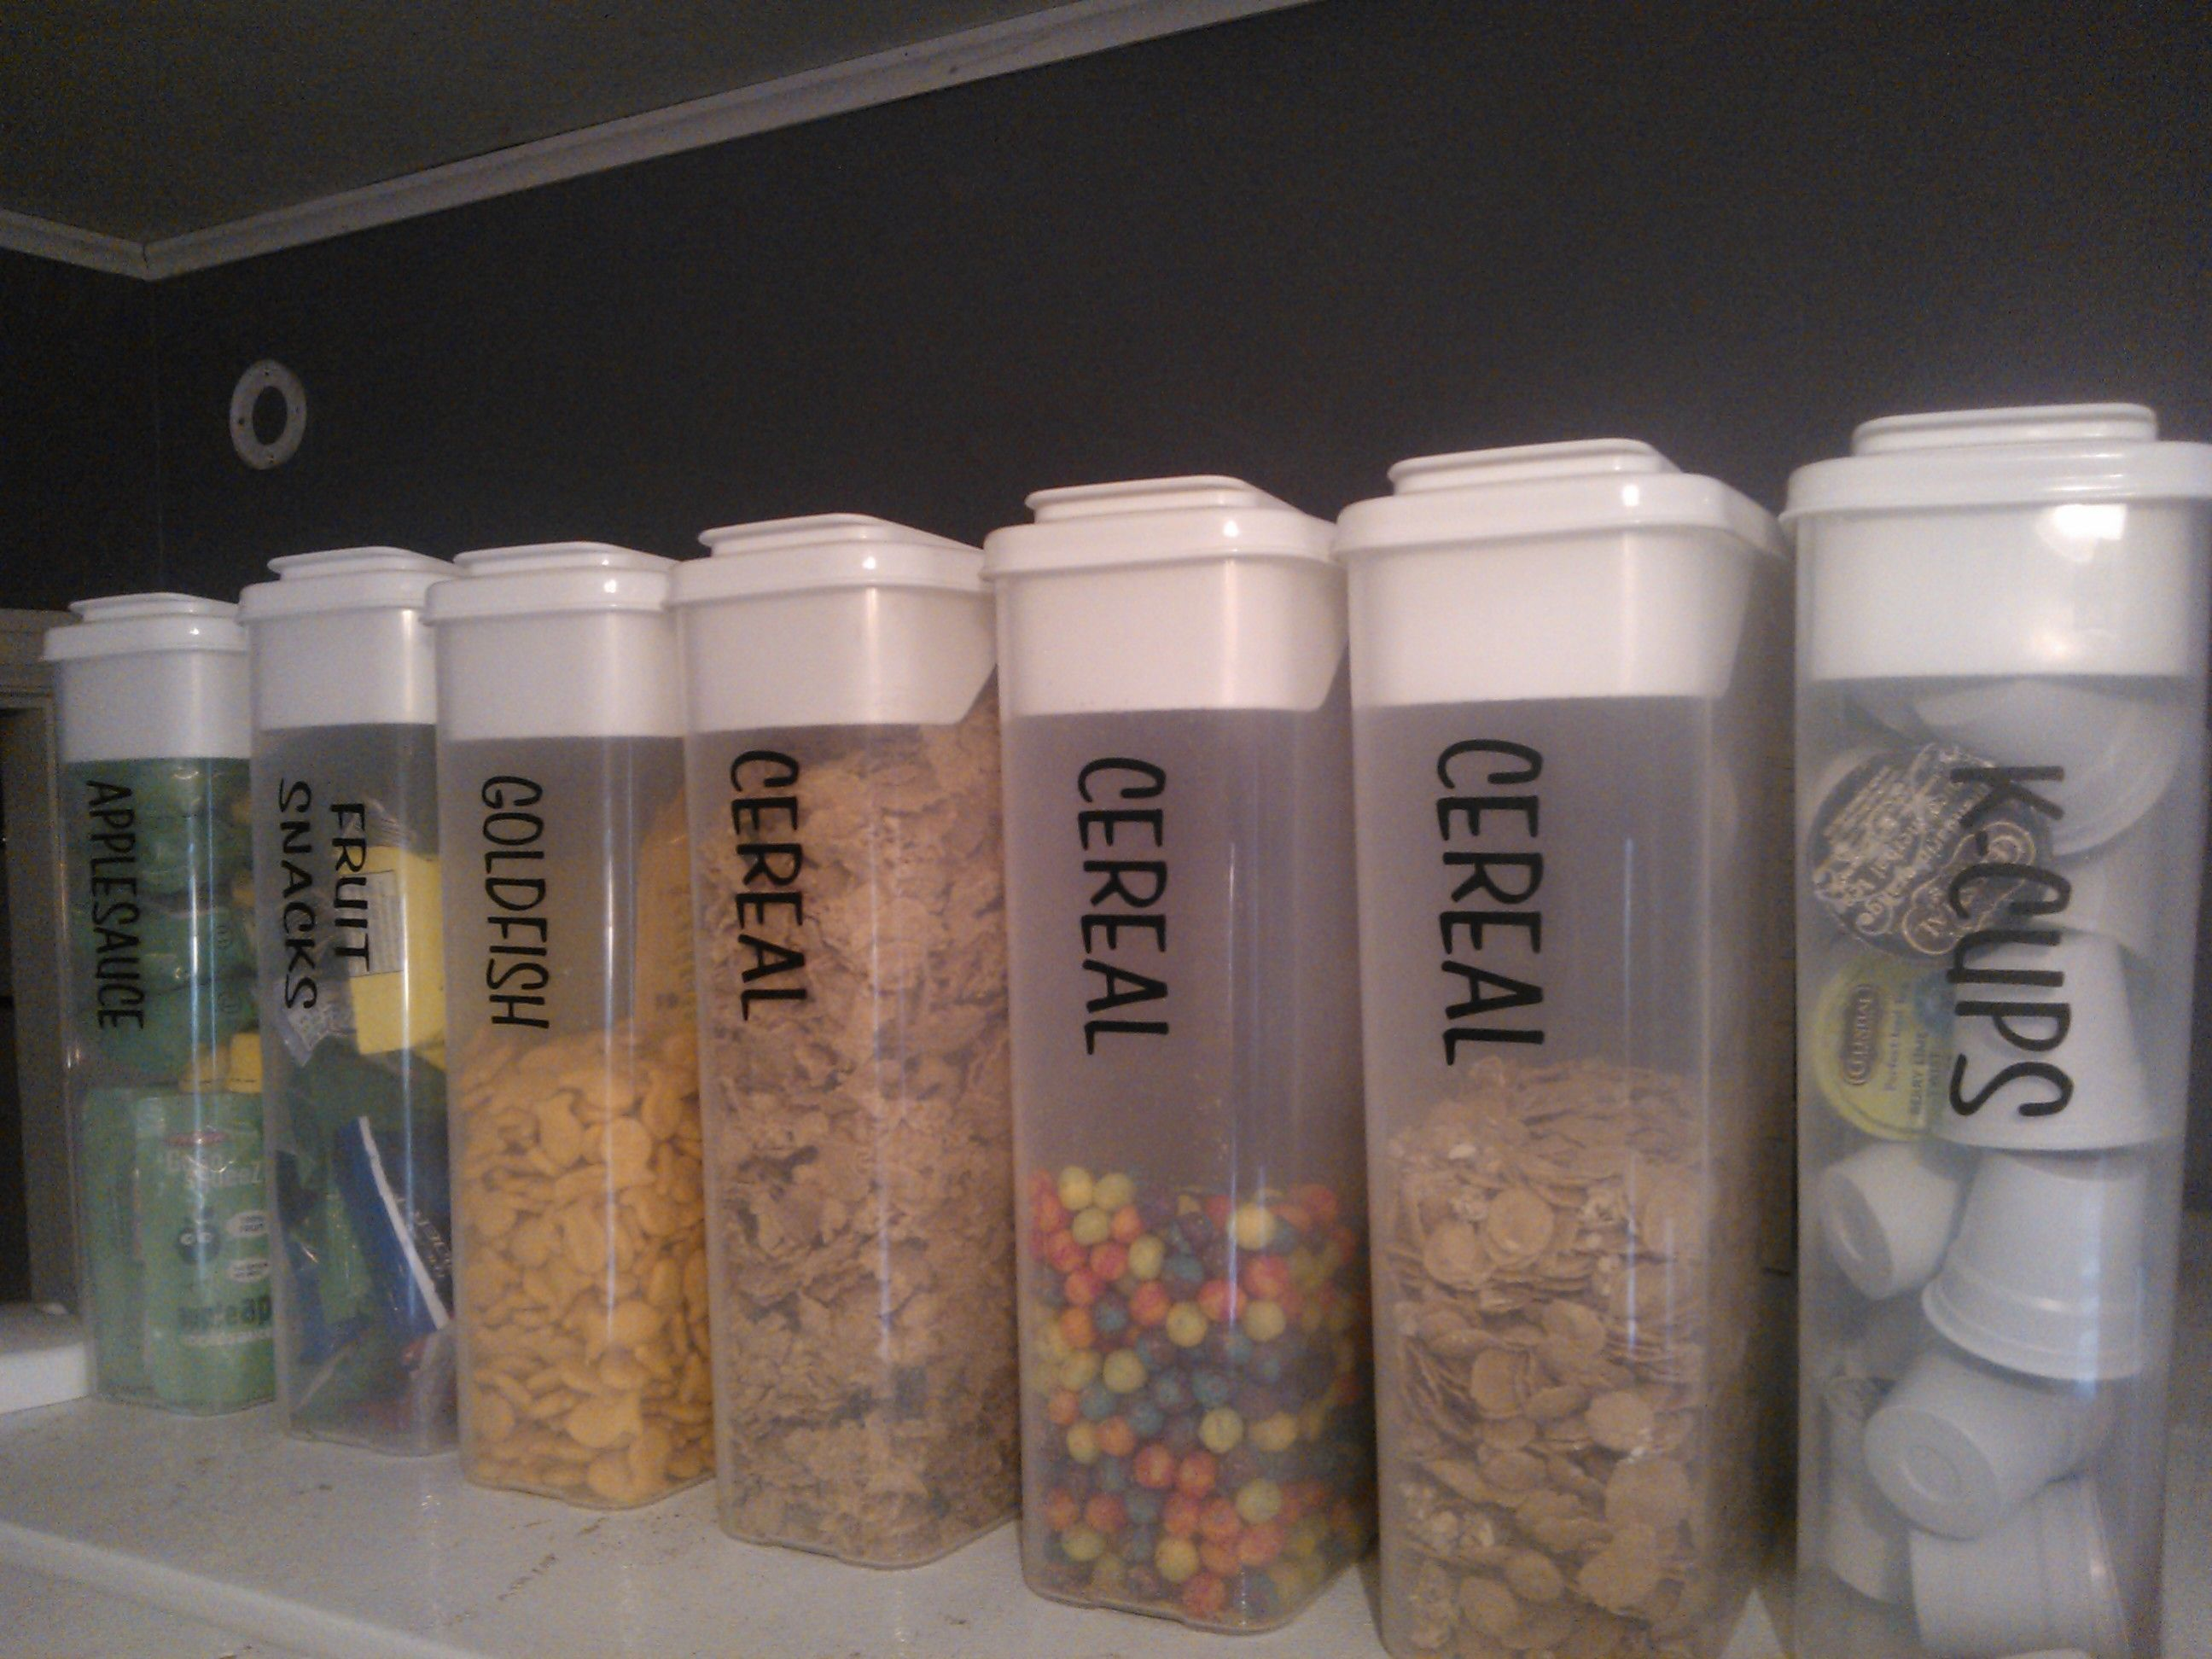 Need These Tall Thin Containers For Cereal Pasta Flour Sugar Etc Pantry Food